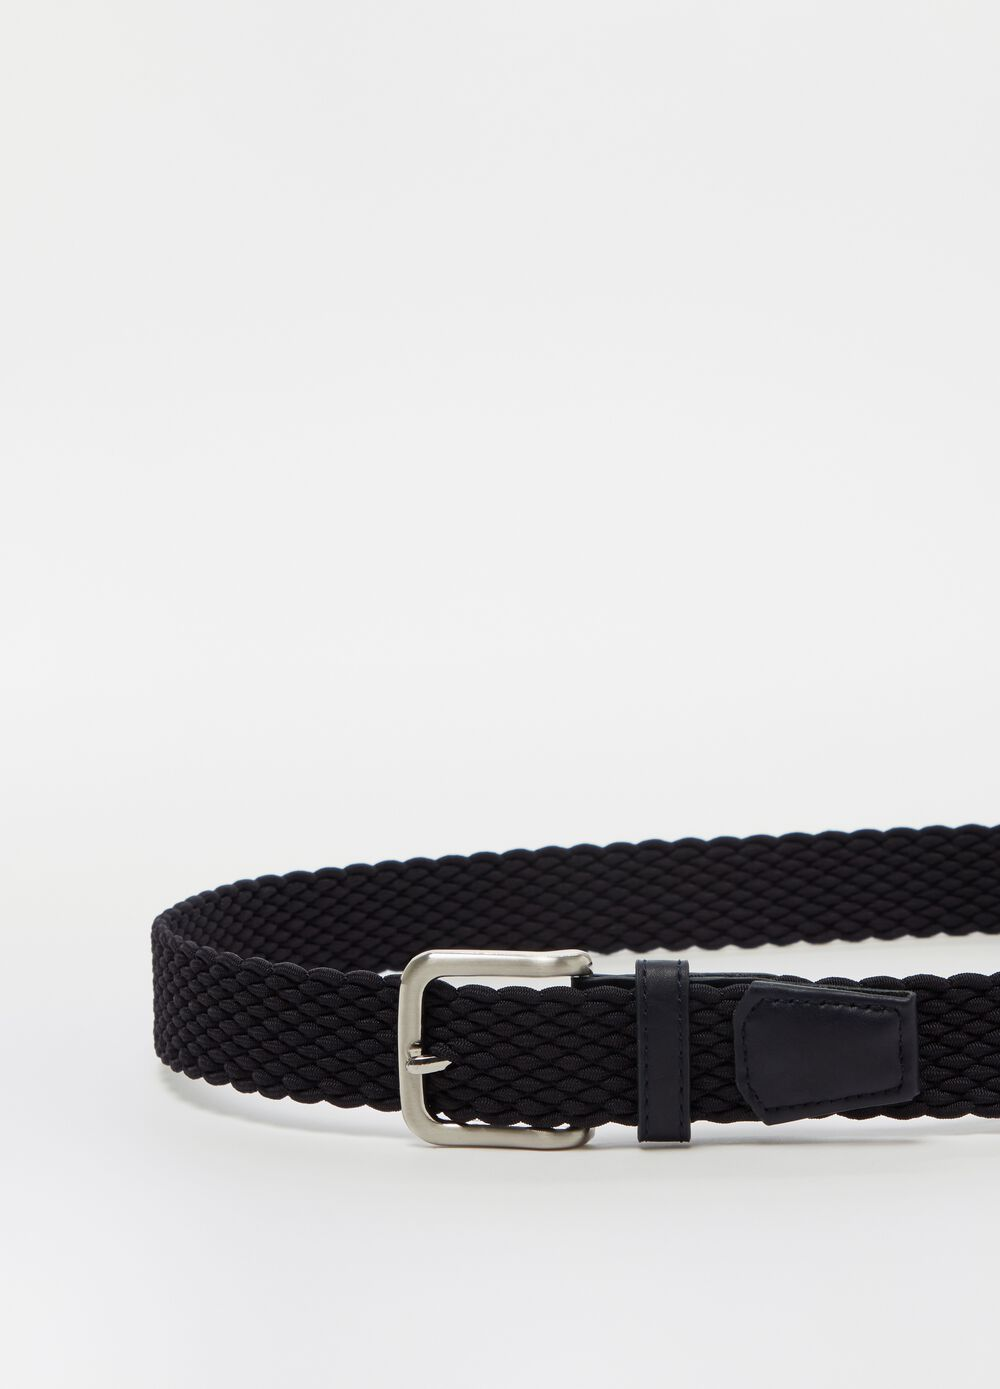 Braided weave belt with metal buckle